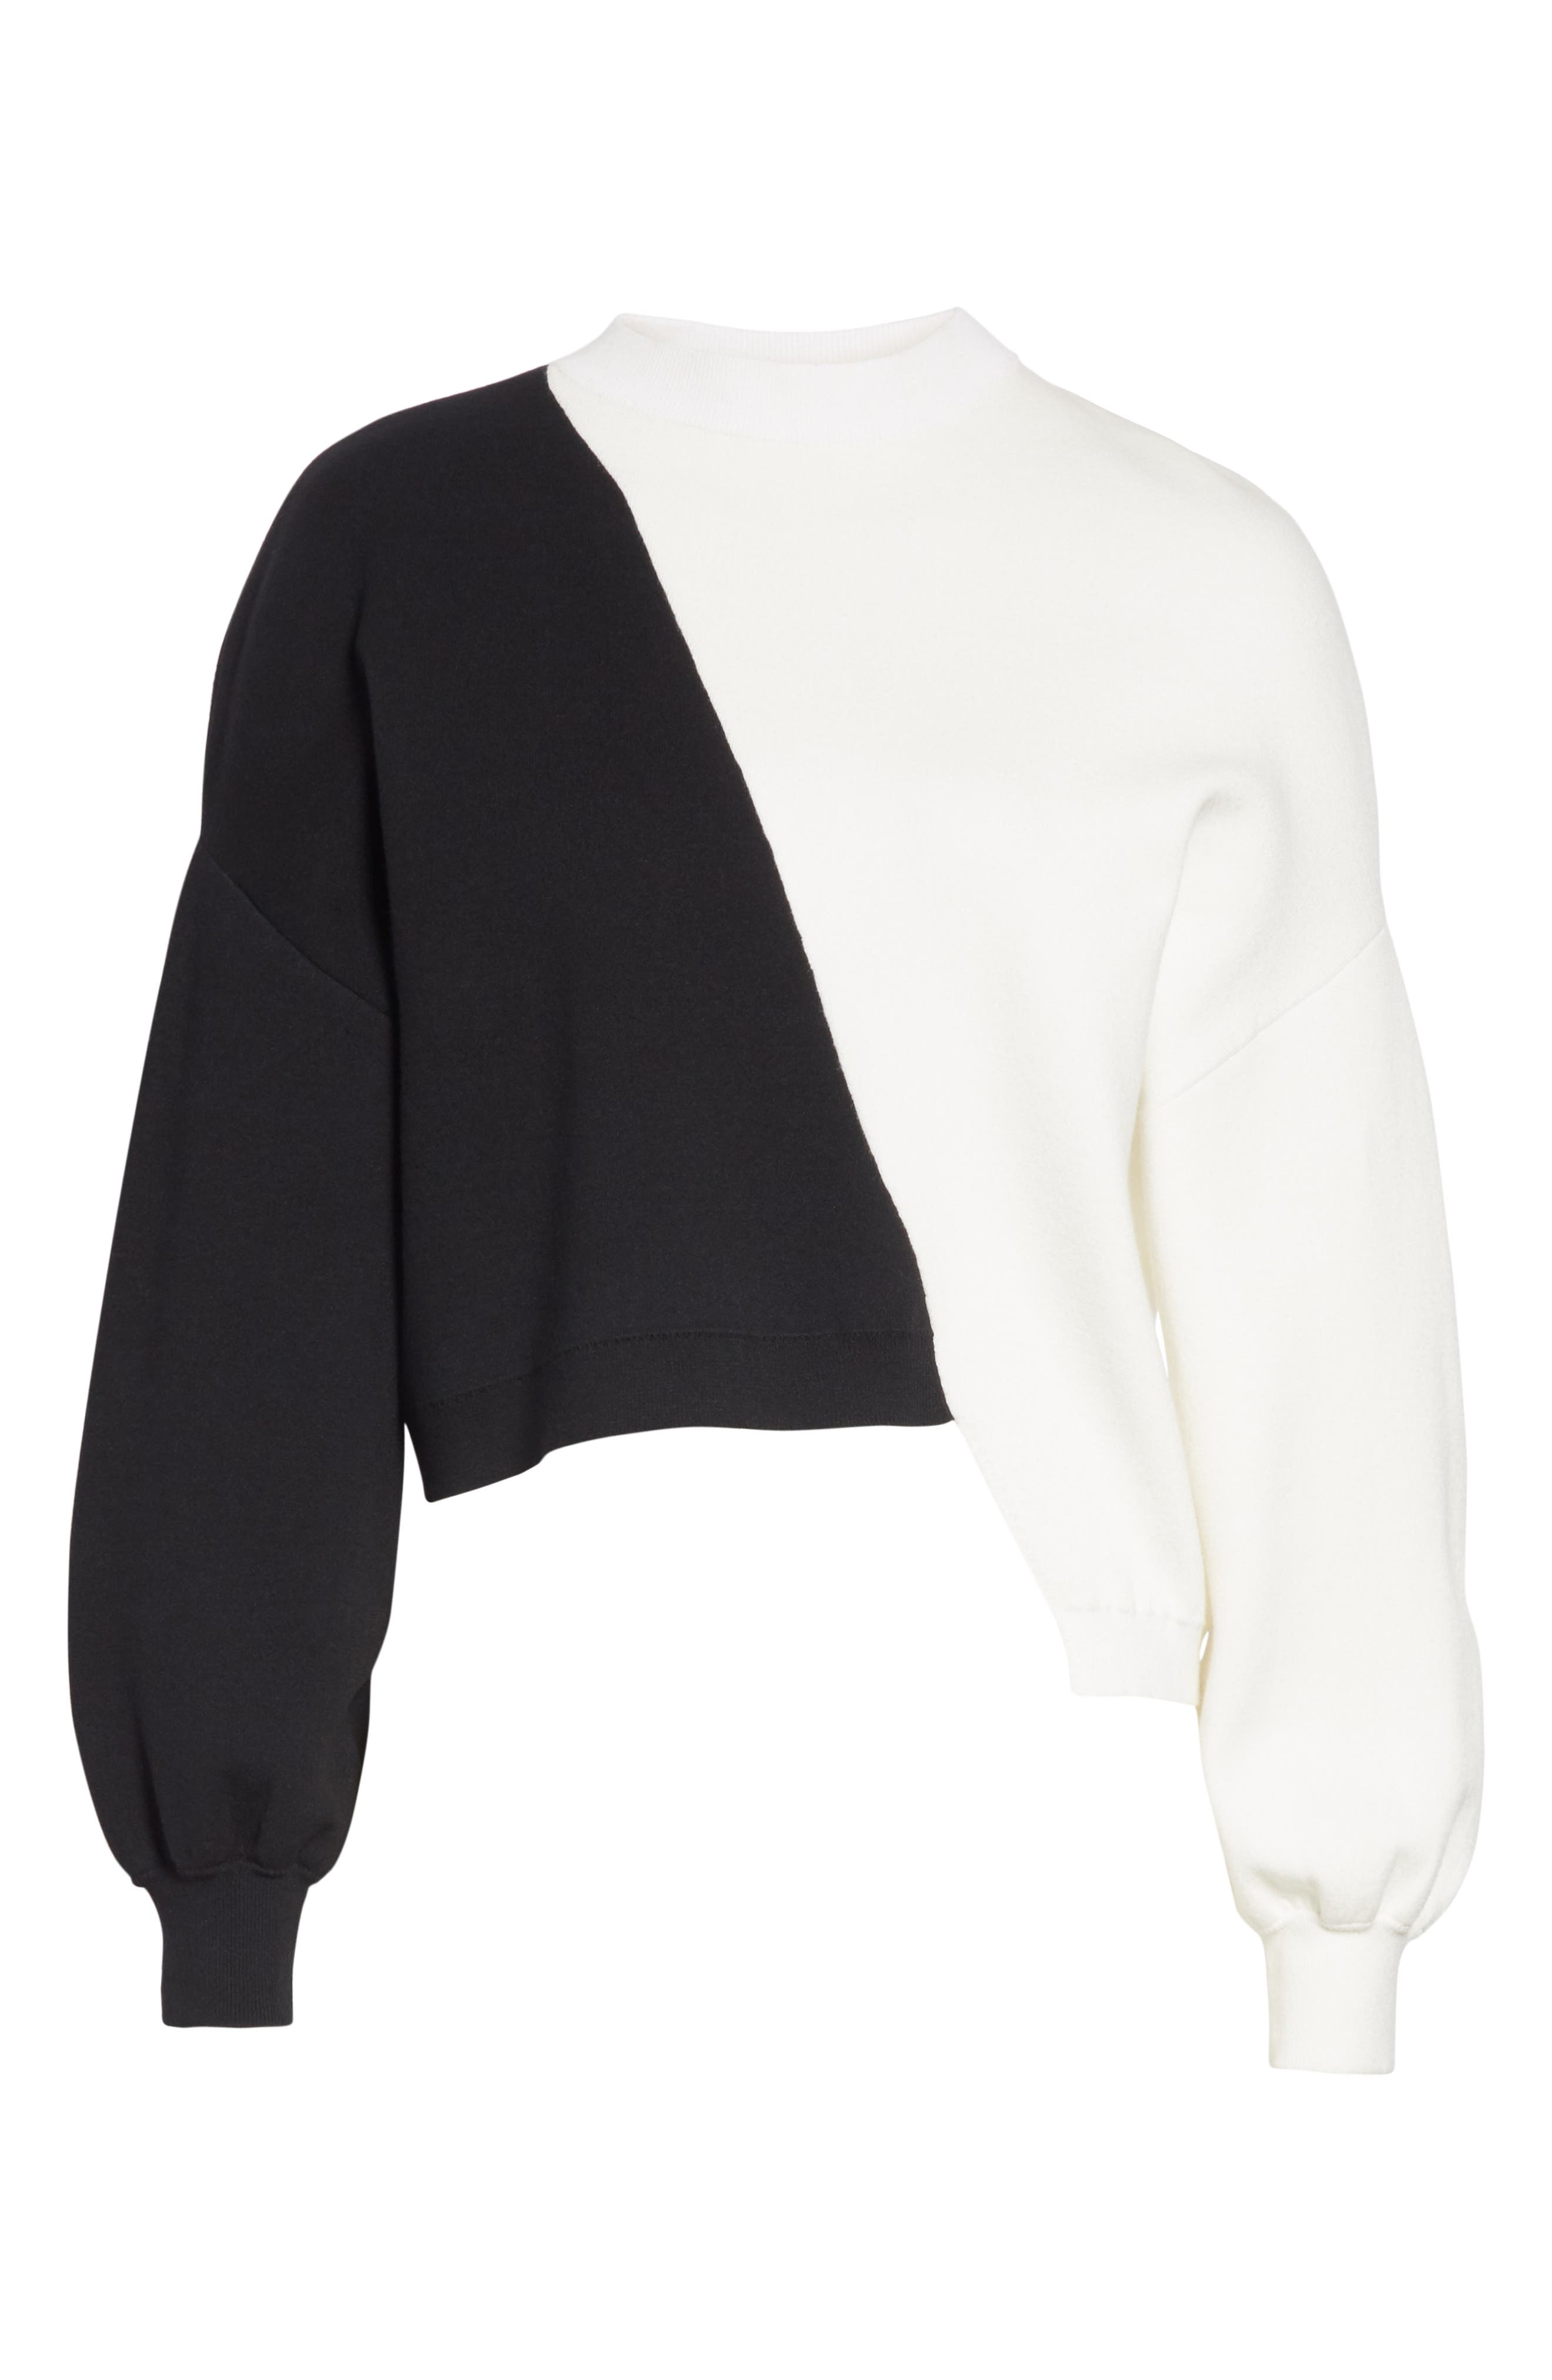 Elyse Asymmetrical Crop Pullover,                             Alternate thumbnail 6, color,                             BLACK/ WHITE